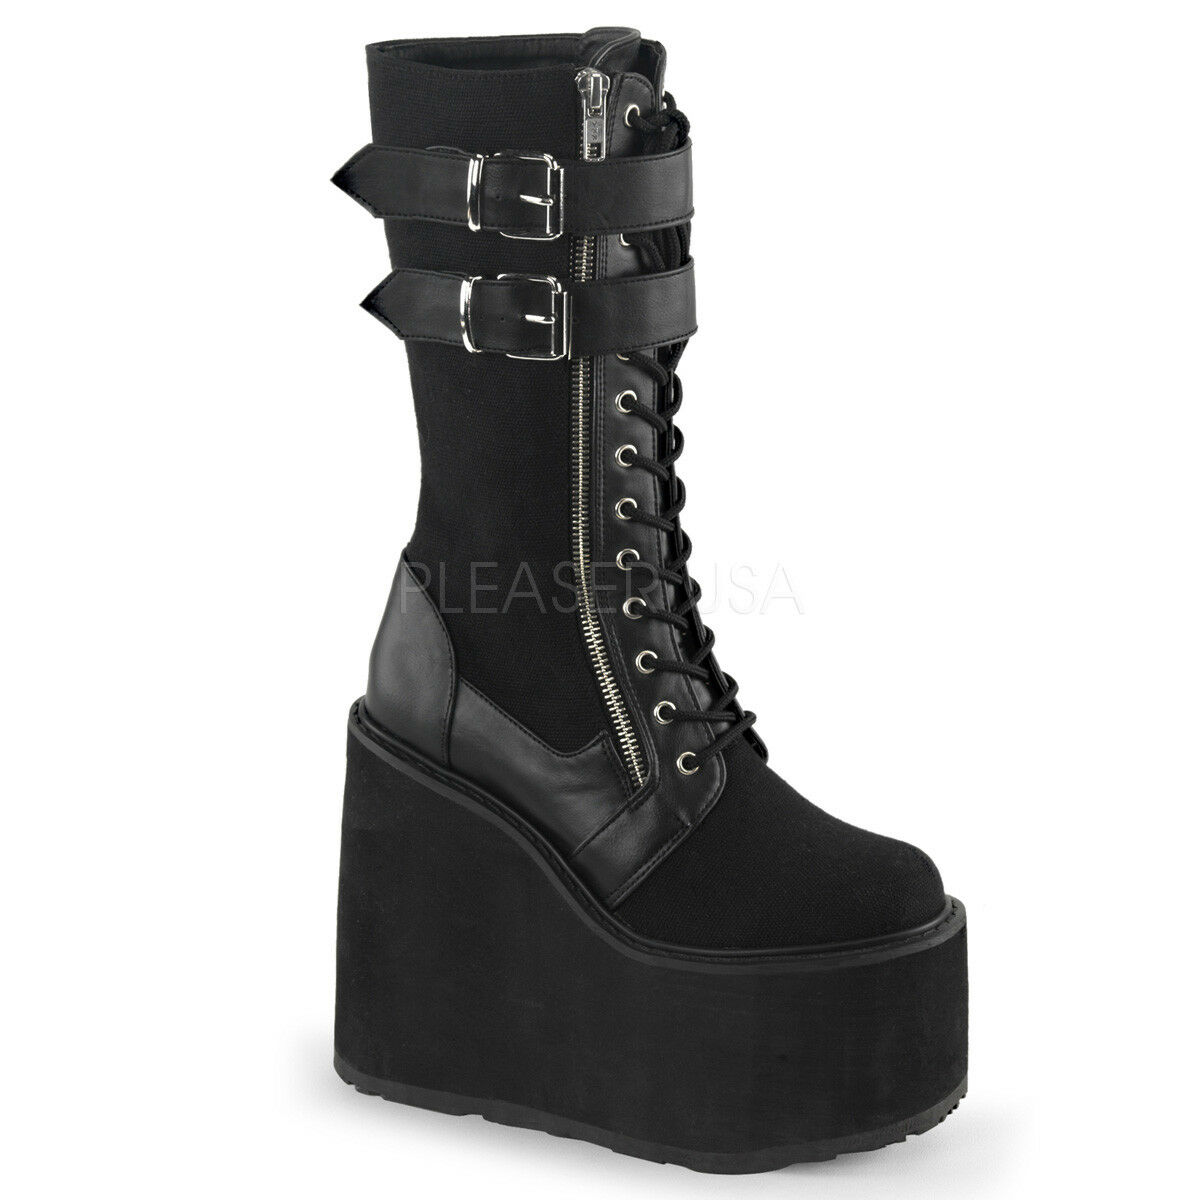 Demonia SWING-221 Black Platform Lace-Up Knee Boot Exposed Zipper Buckle Strap